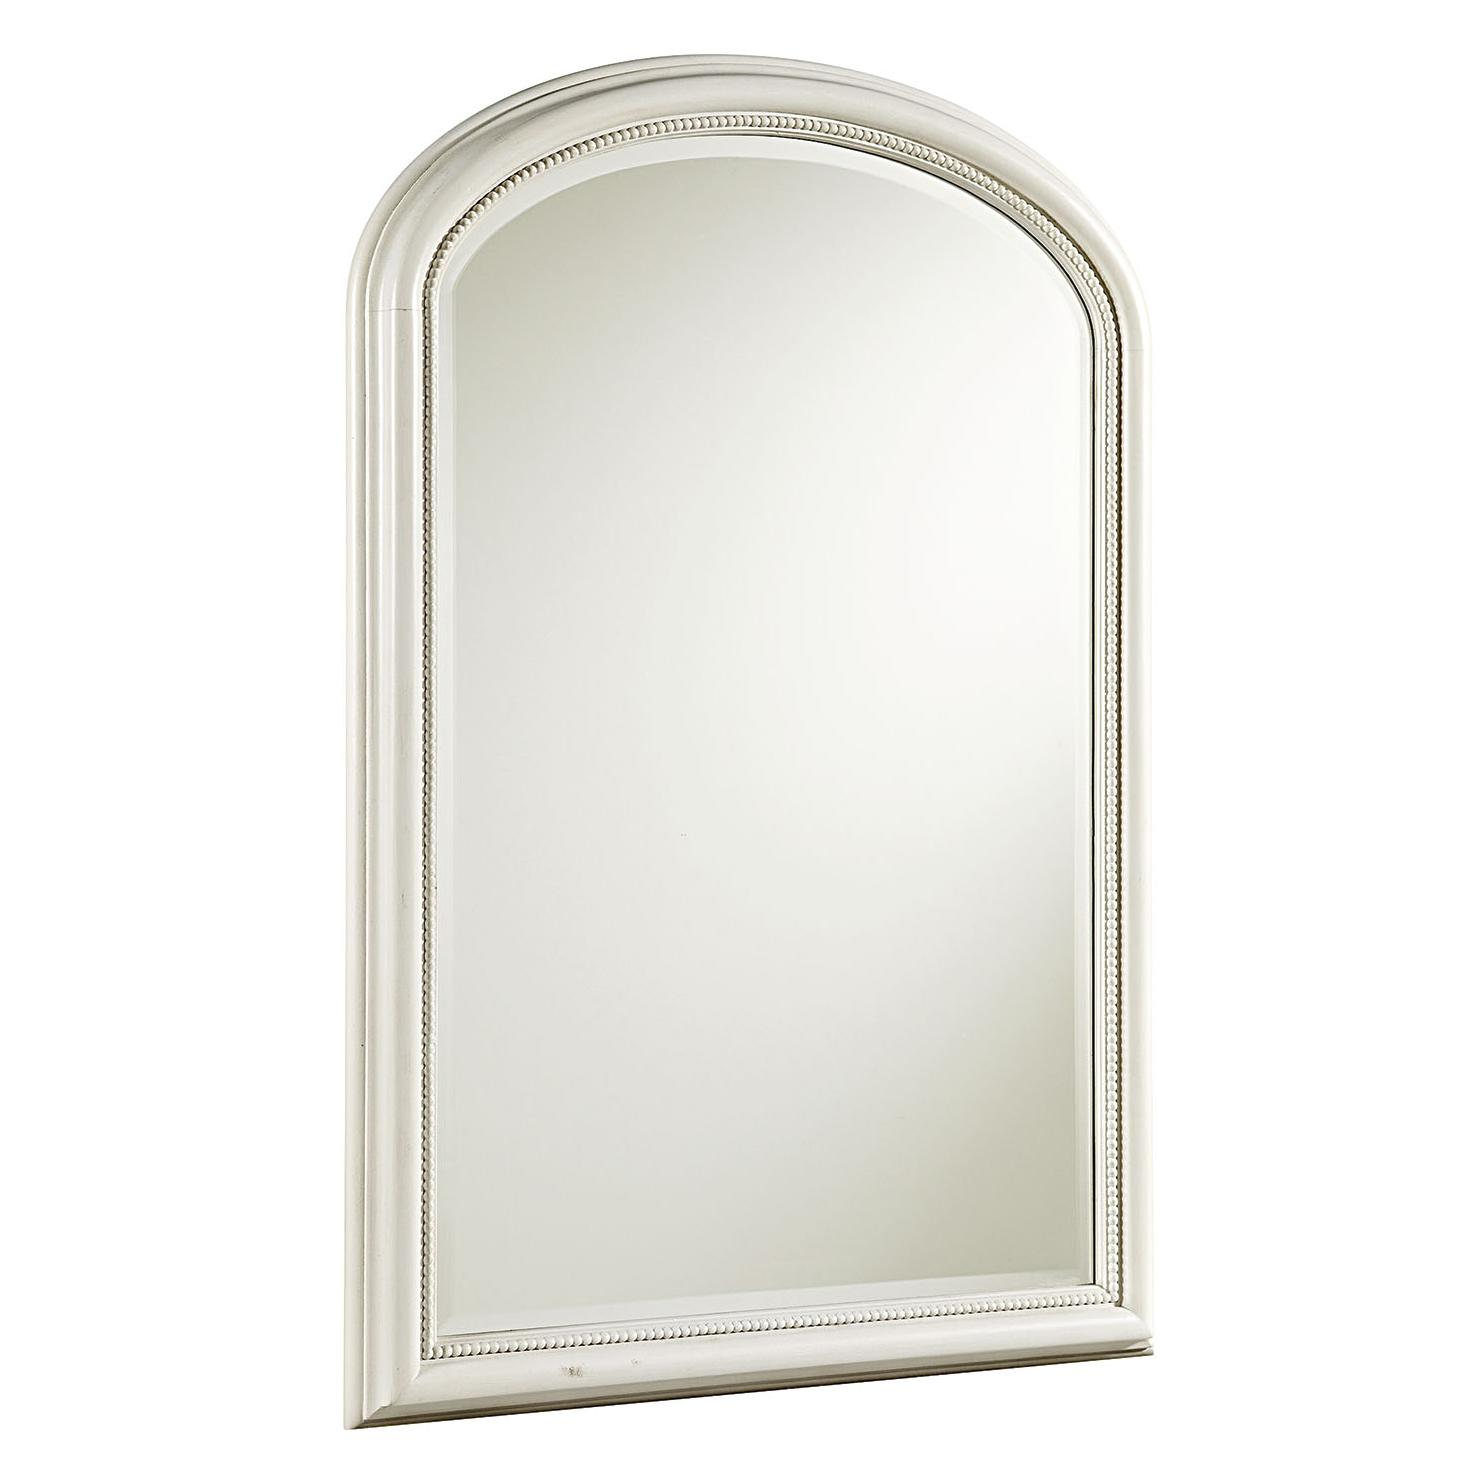 Smartstuff Bellamy Vertical Mirror - Item Number: 330A031